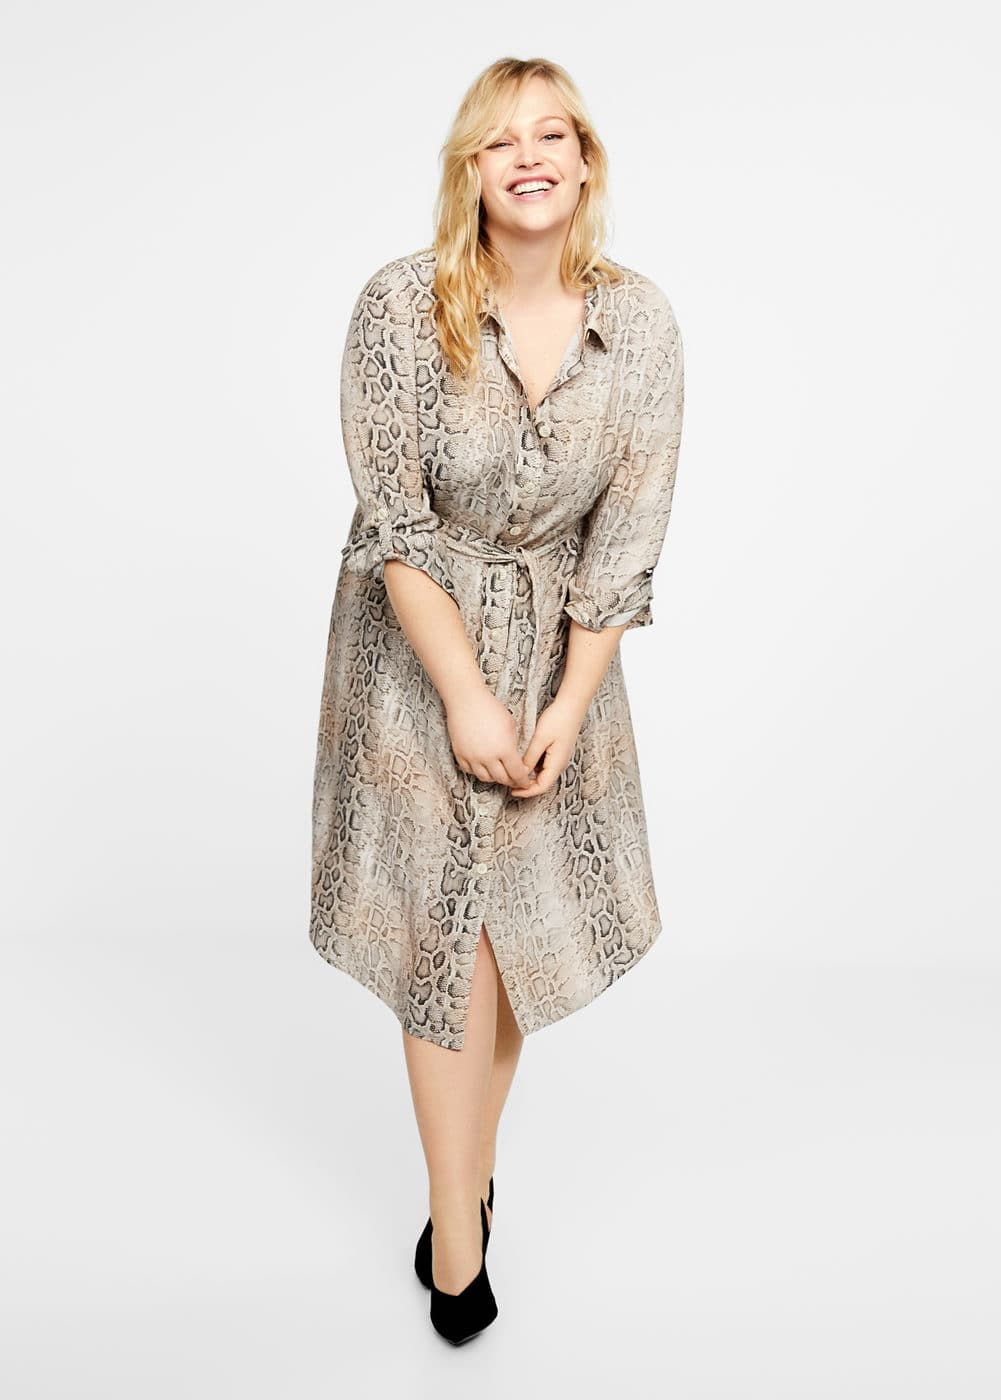 d0ac1e458 Snake print shirt dress - Plus sizes | Violeta by MANGO Jordan